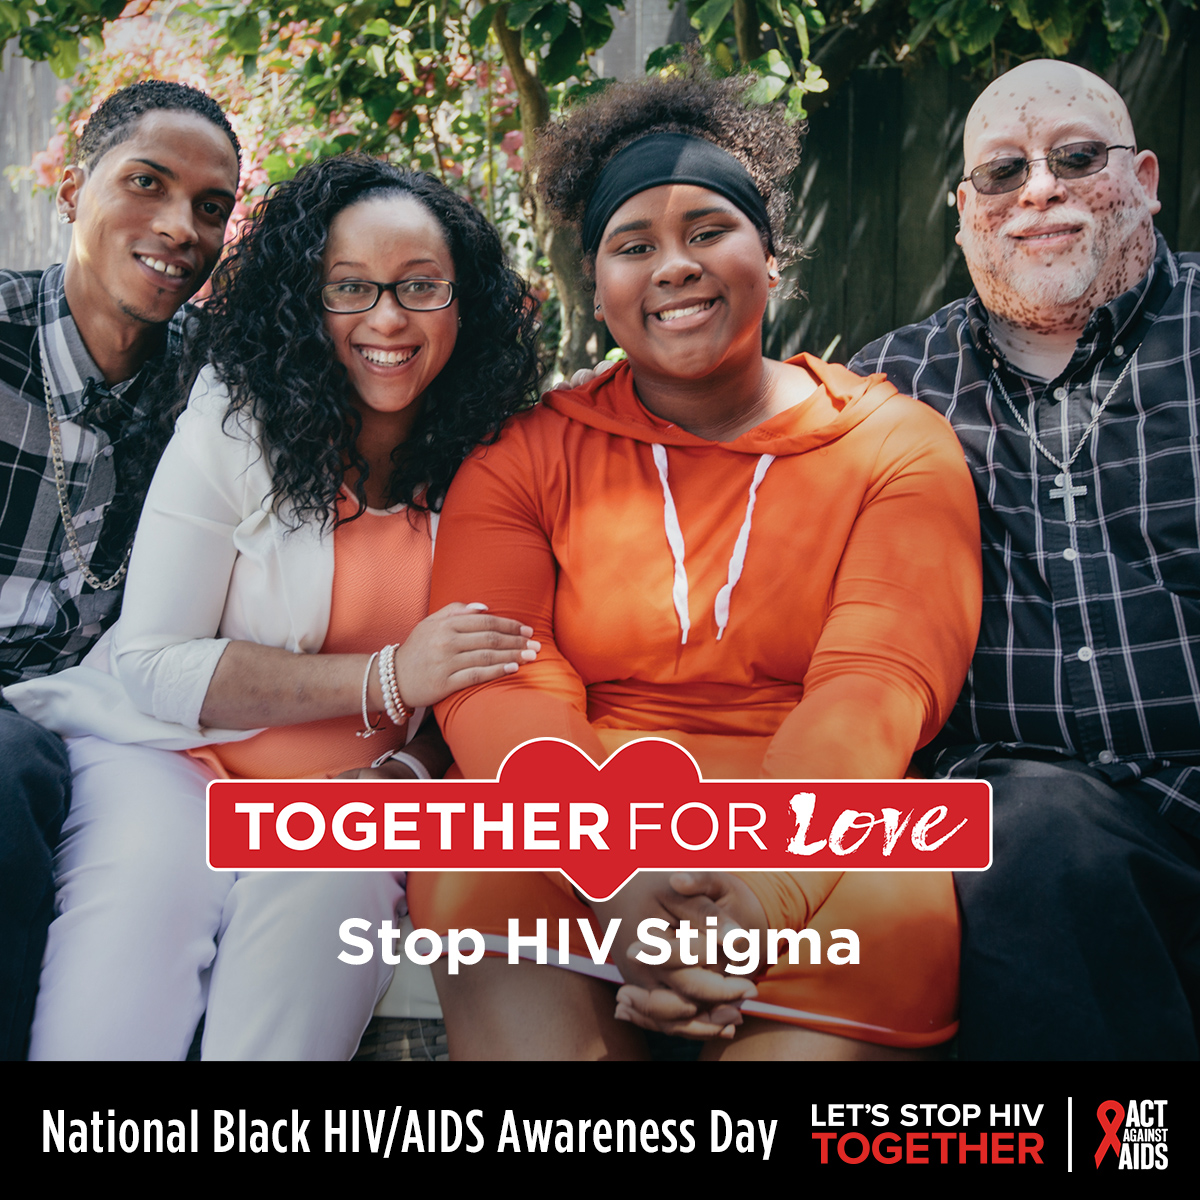 Together for love : stop HIV stigma